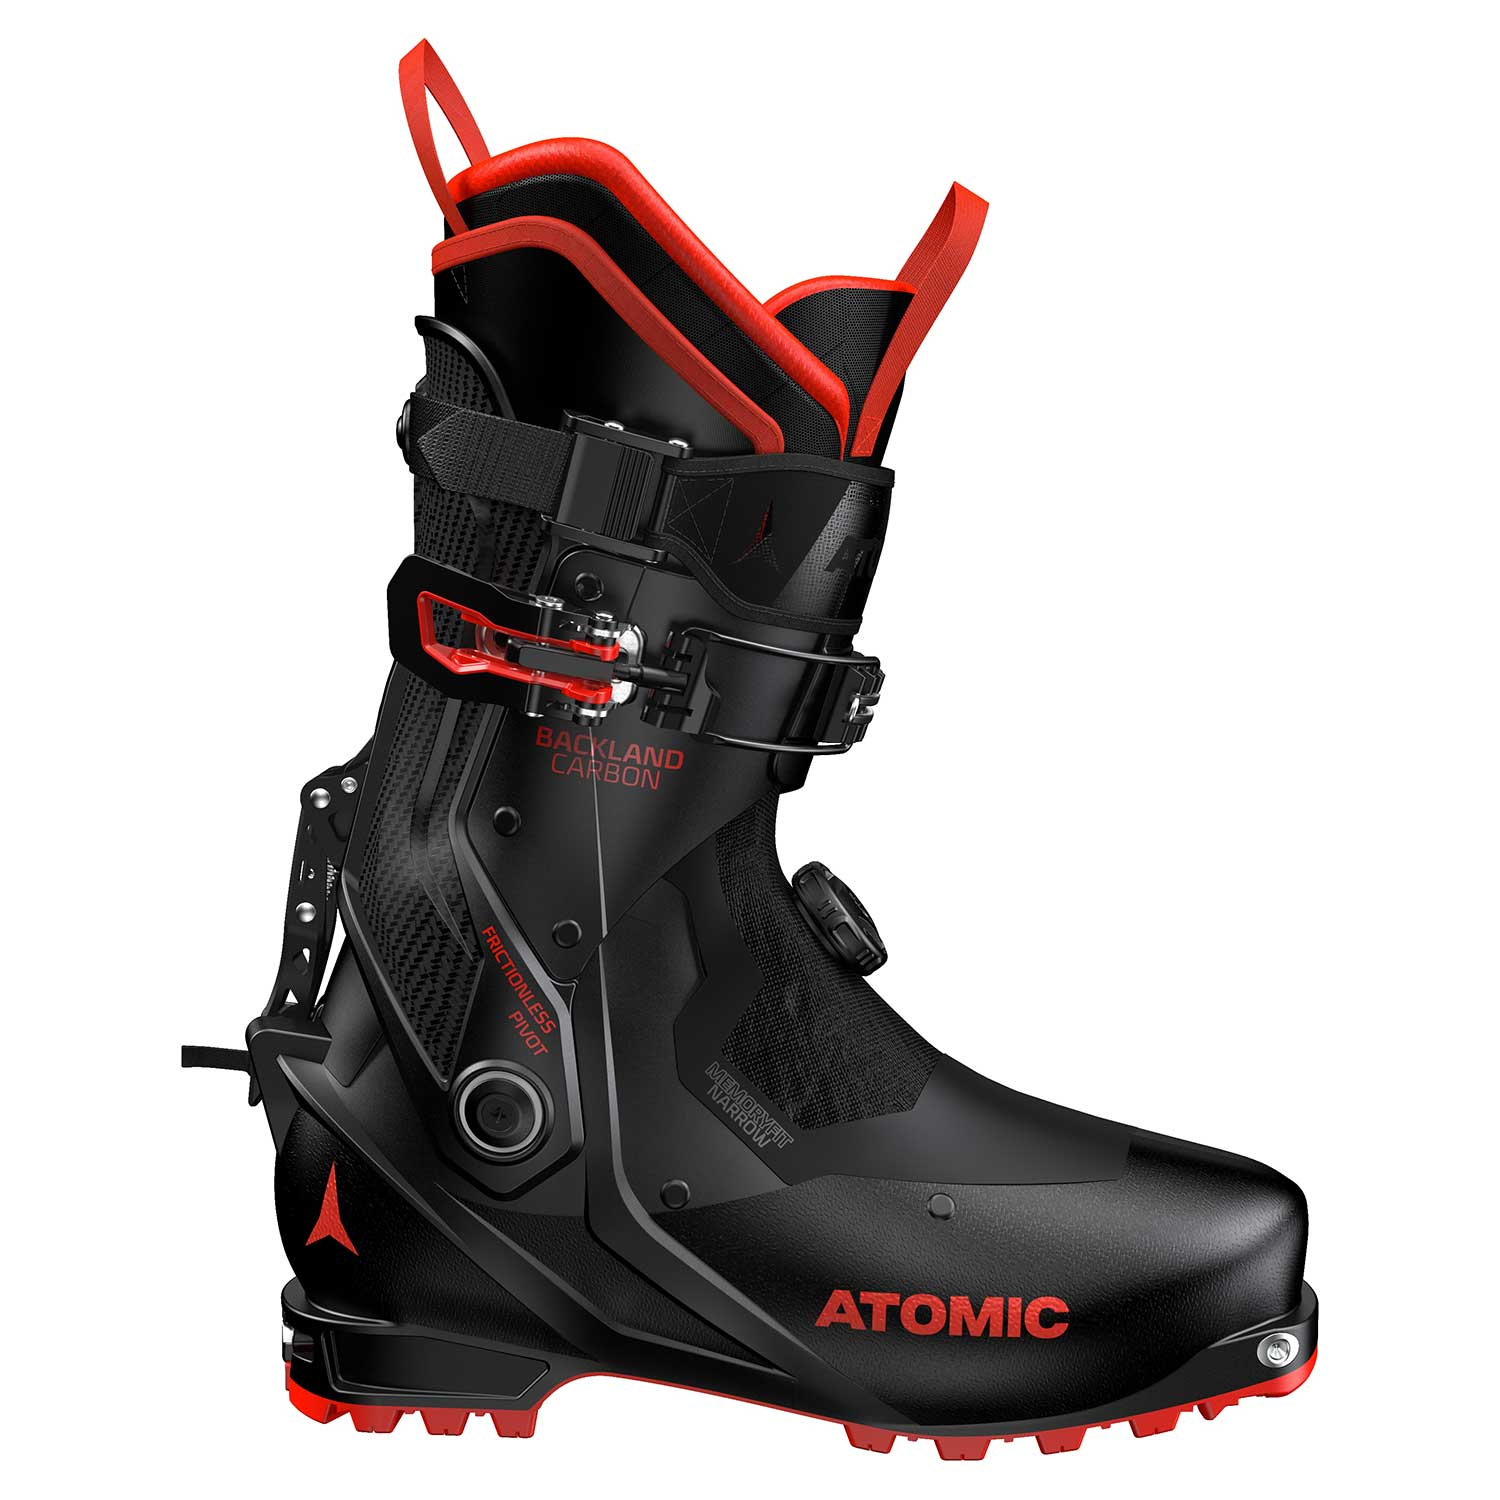 Atomic Backland Carbon Ski Boot Black/Red 2020